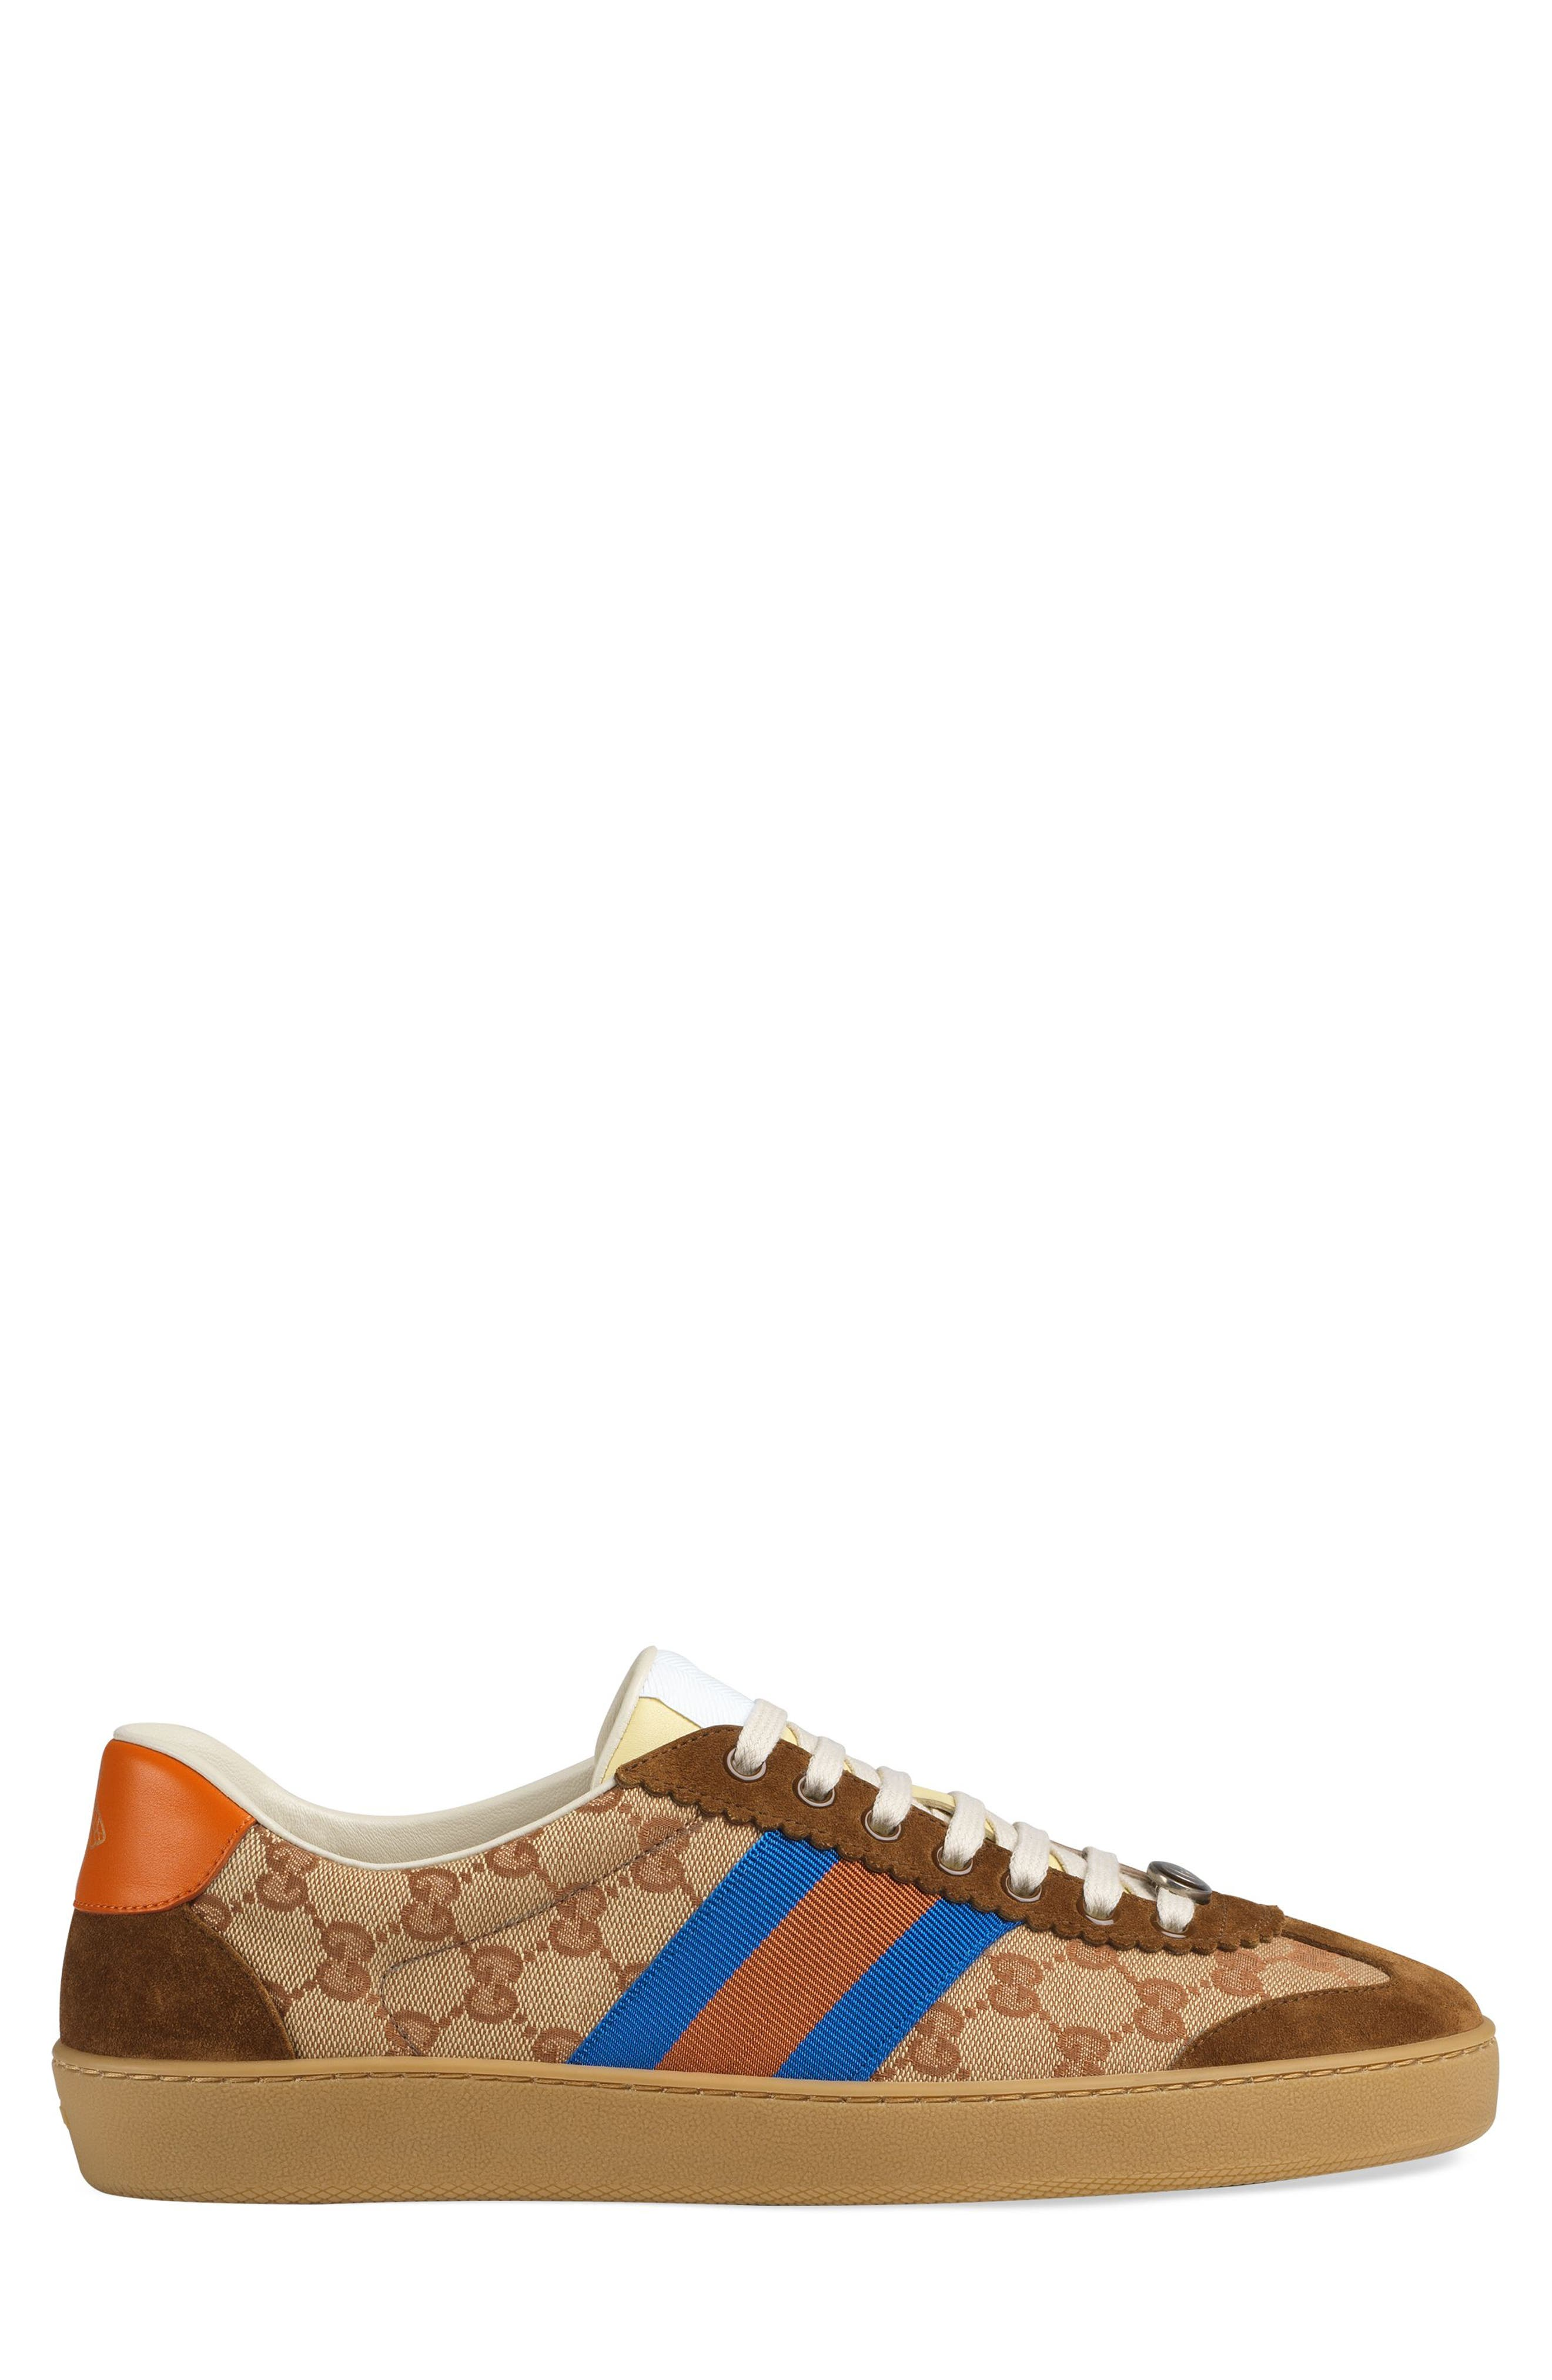 Gucci Web-Striped Canvas & Suede Sneakers - Brown Size 10.5 M